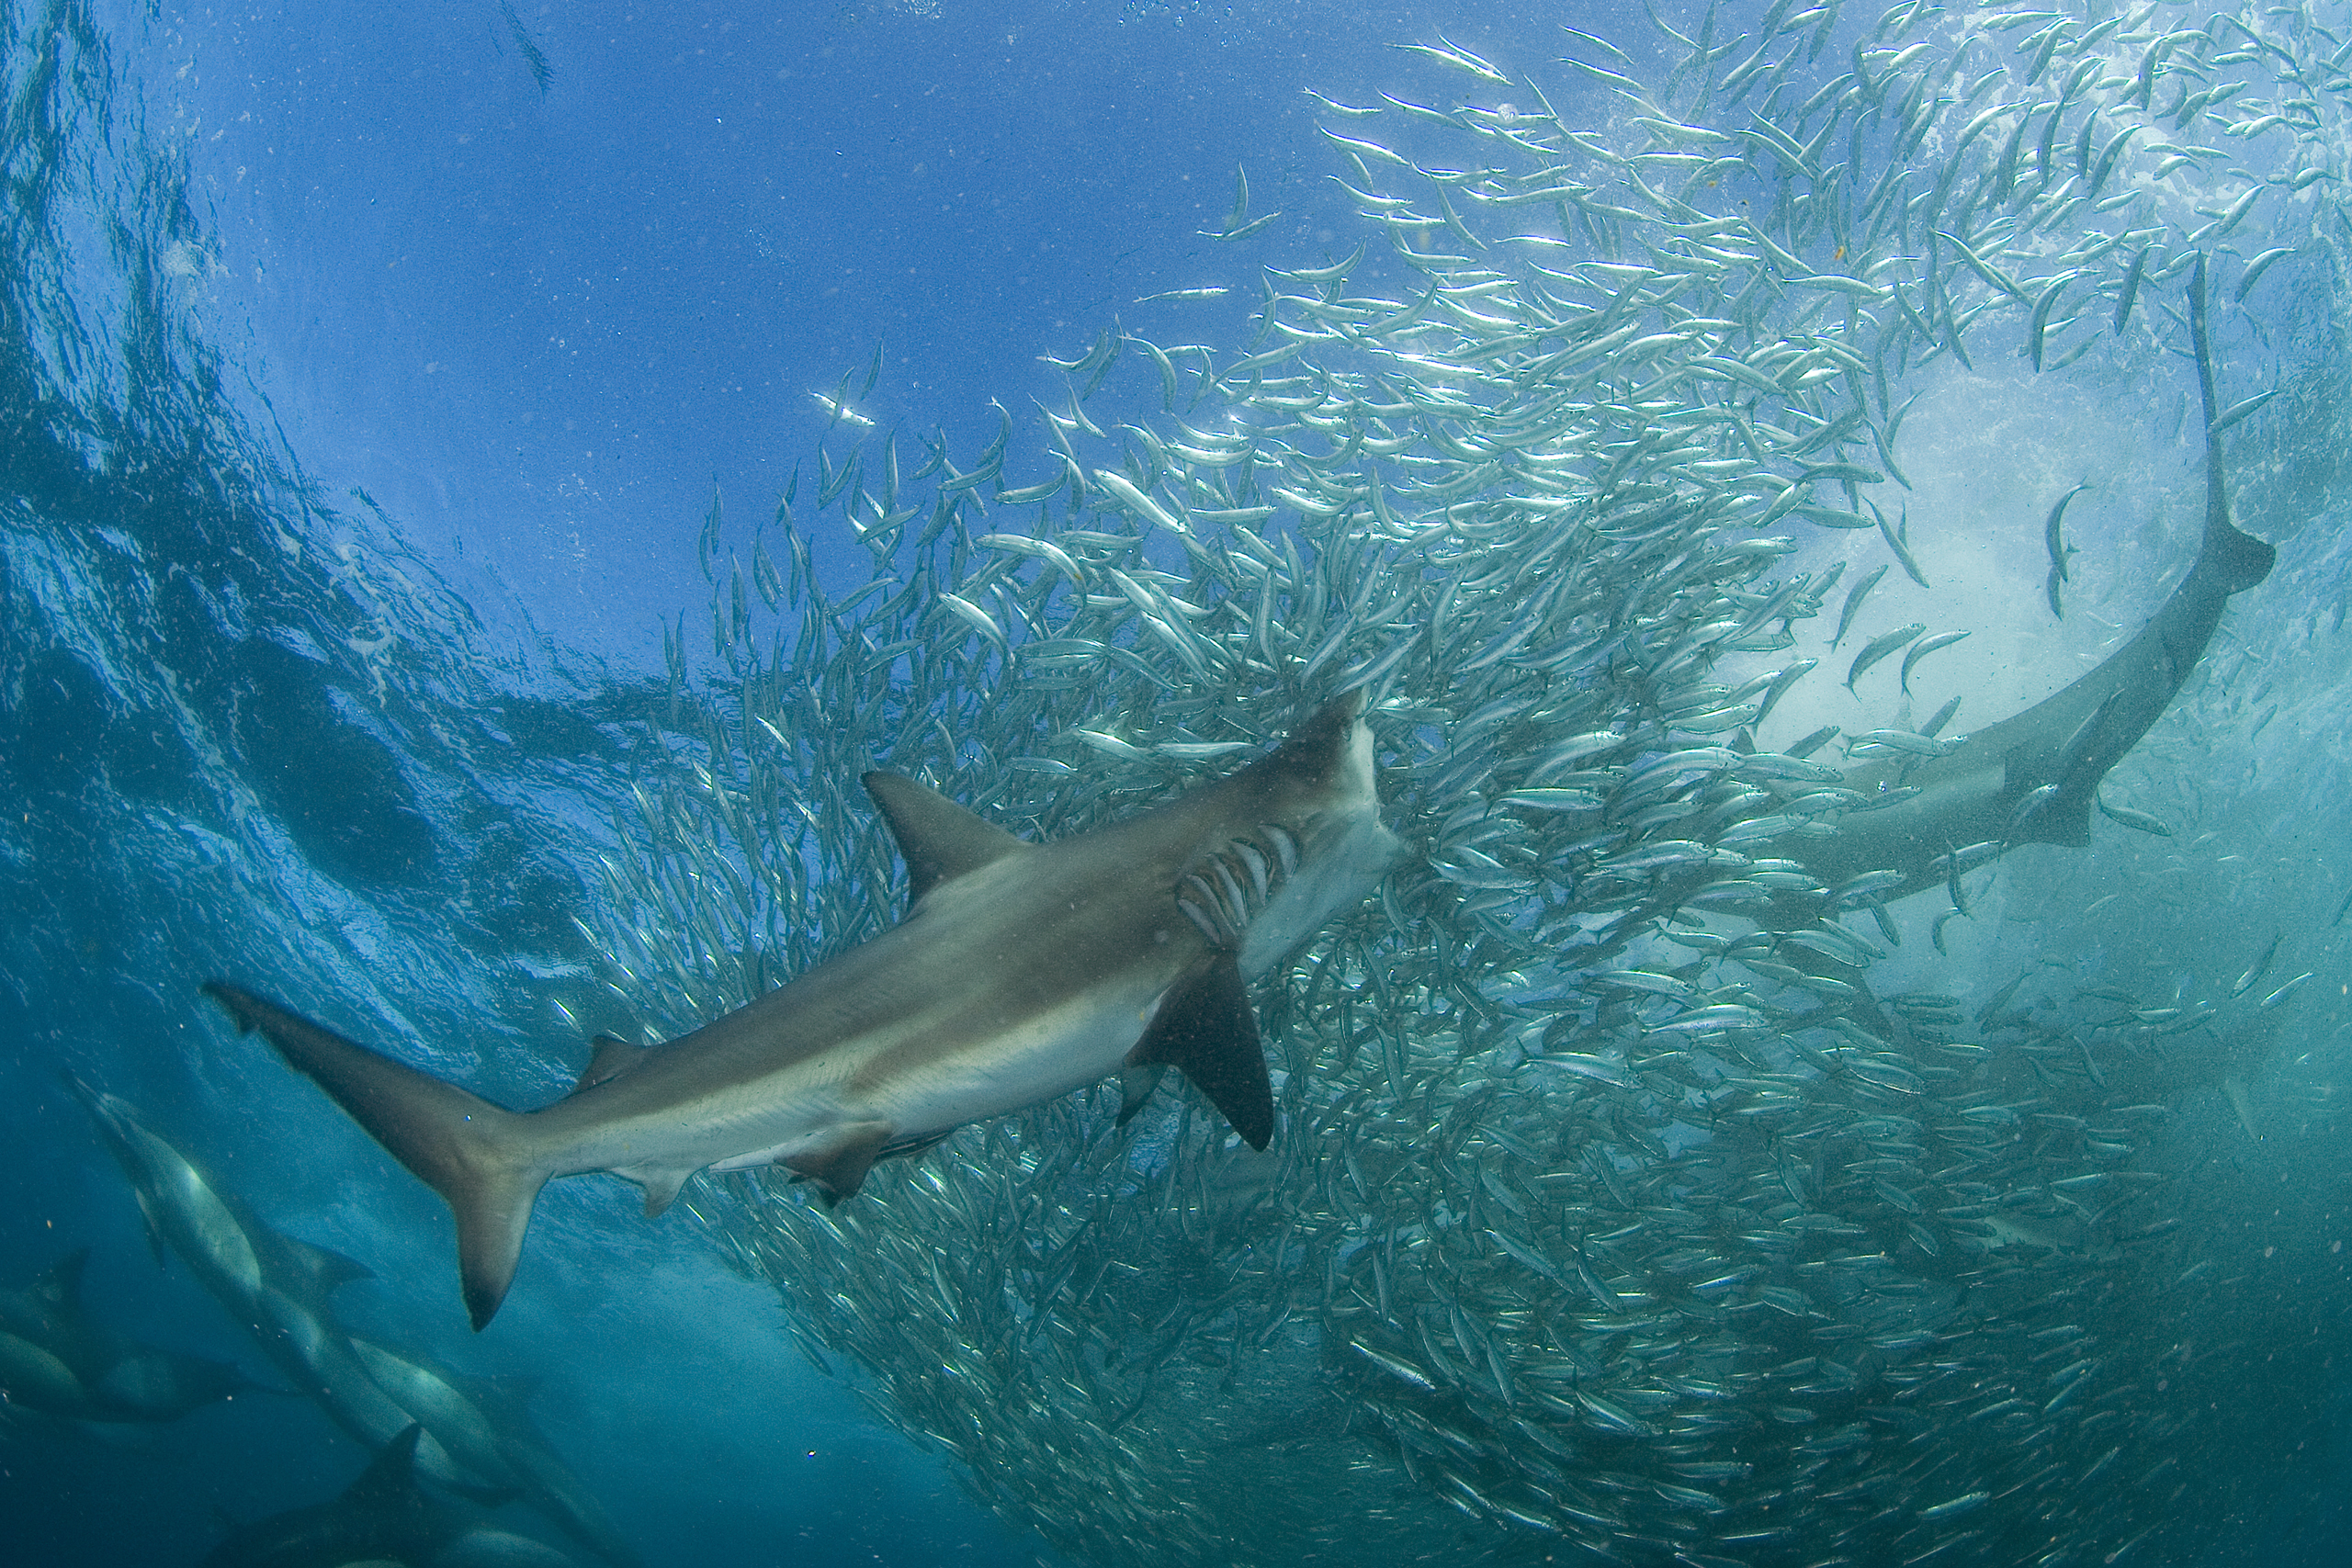 Bronze Whaler sharks are the most abundant sharks during the sardine run off South Africa's east coast every June/July. Hundreds of them patrol the margins of baitballs and charge into the seething mass of fish singly or in small groups to feed.